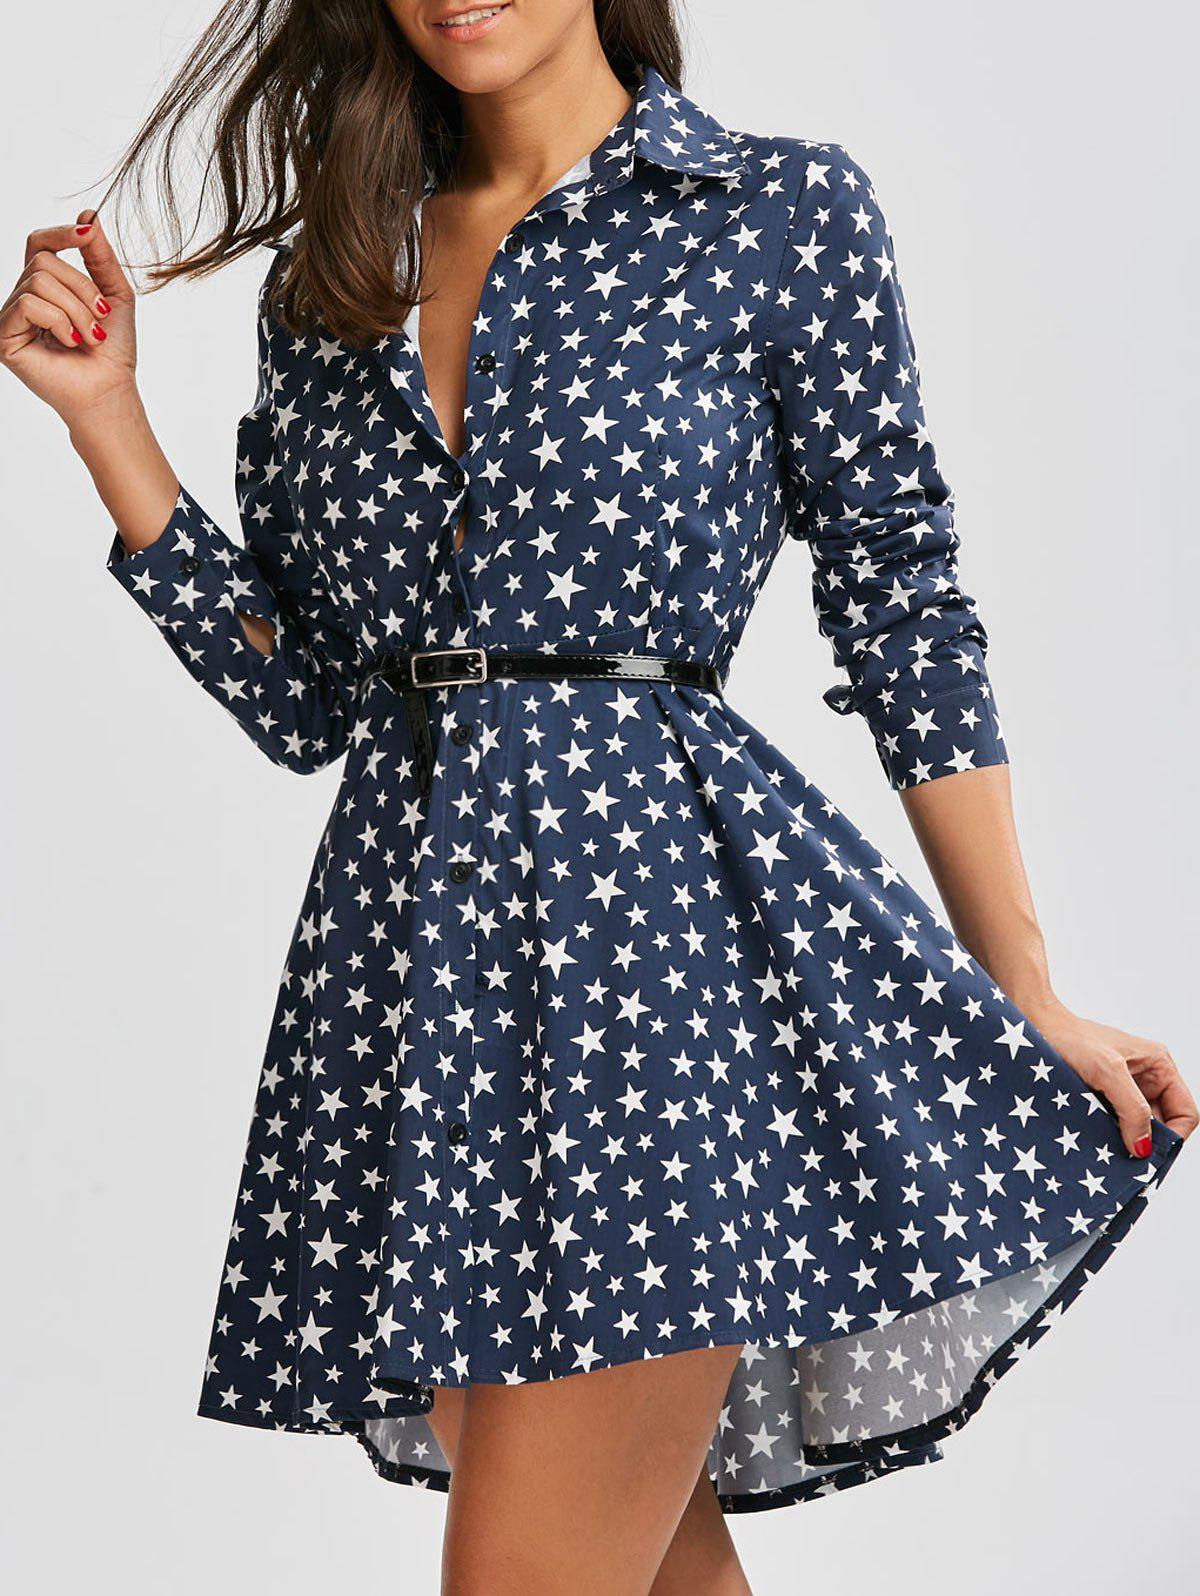 Chic Polka Dot Star Print Dovetail Mini Dress